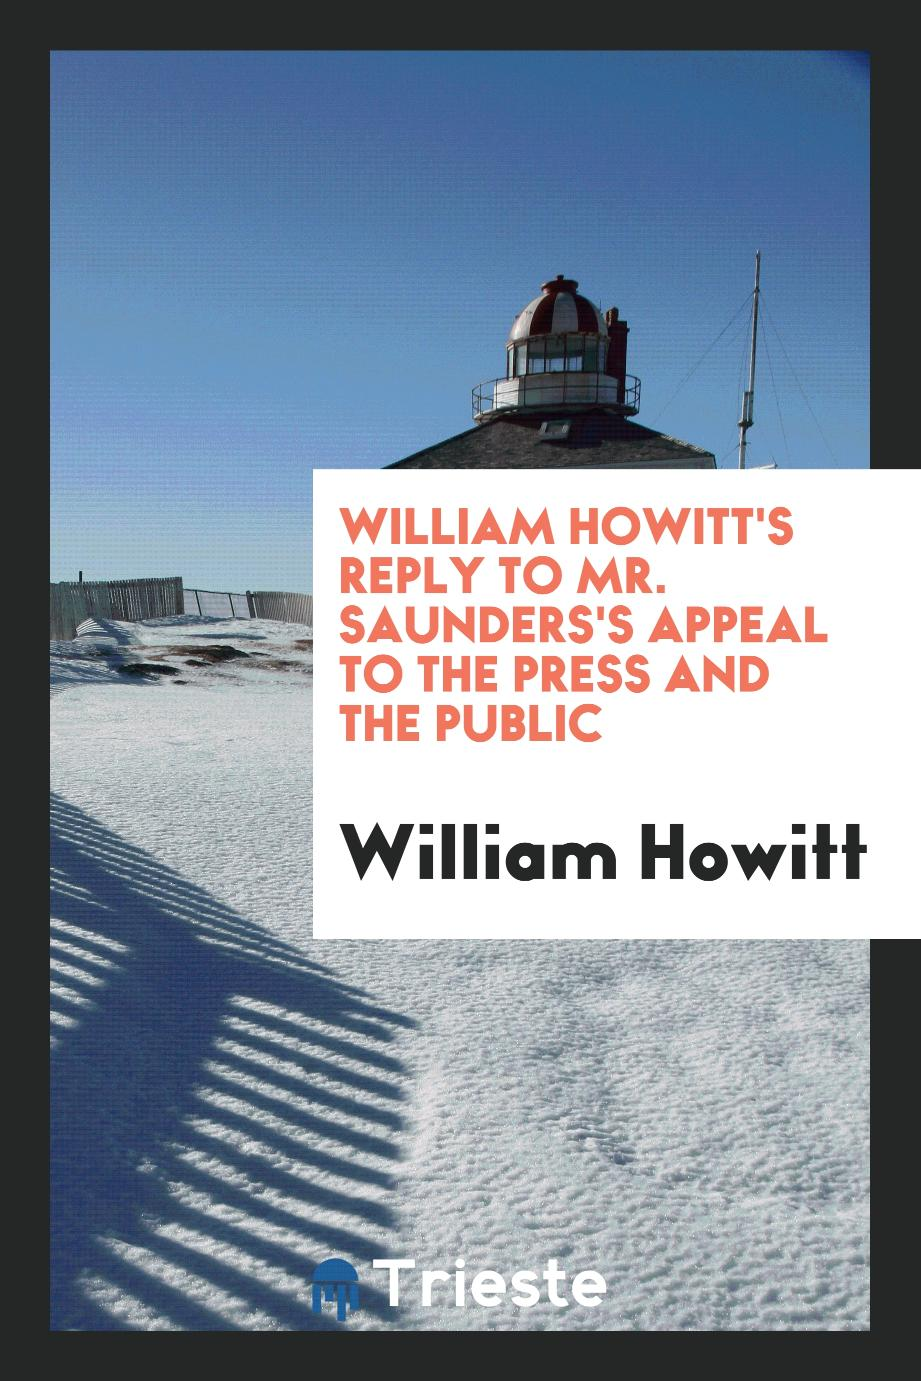 William Howitt's reply to Mr. Saunders's appeal to the press and the public